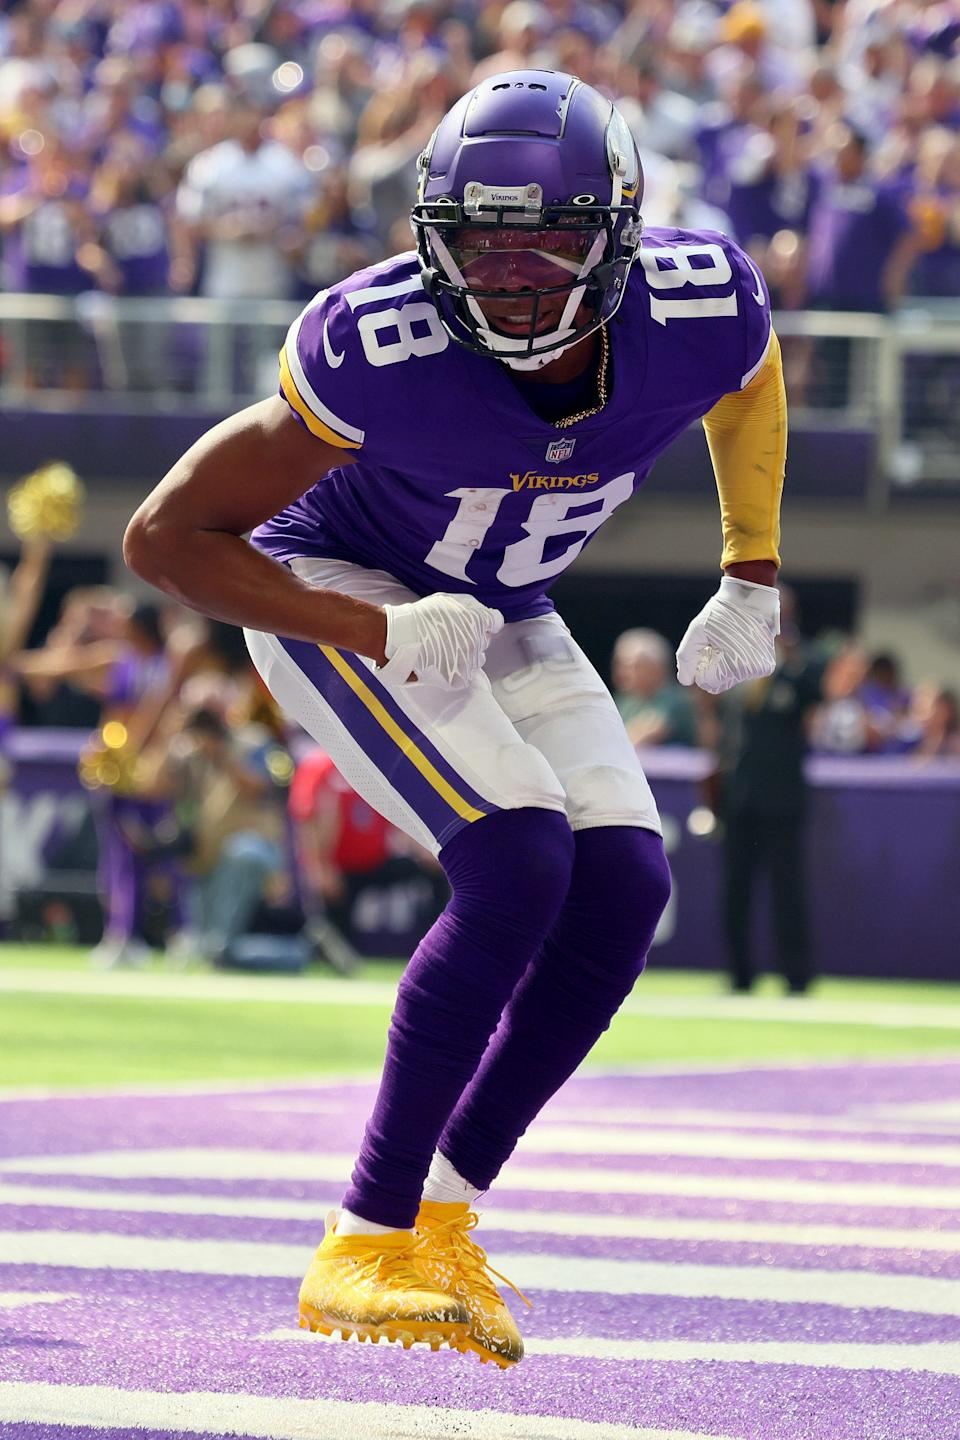 MINNEAPOLIS, MINNESOTA - OCTOBER 03: Justin Jefferson #18 of the Minnesota Vikings celebrates after a touchdown in the game against the Cleveland Browns during the first quarter at U.S. Bank Stadium on October 03, 2021 in Minneapolis, Minnesota. (Photo by Adam Bettcher/Getty Images)